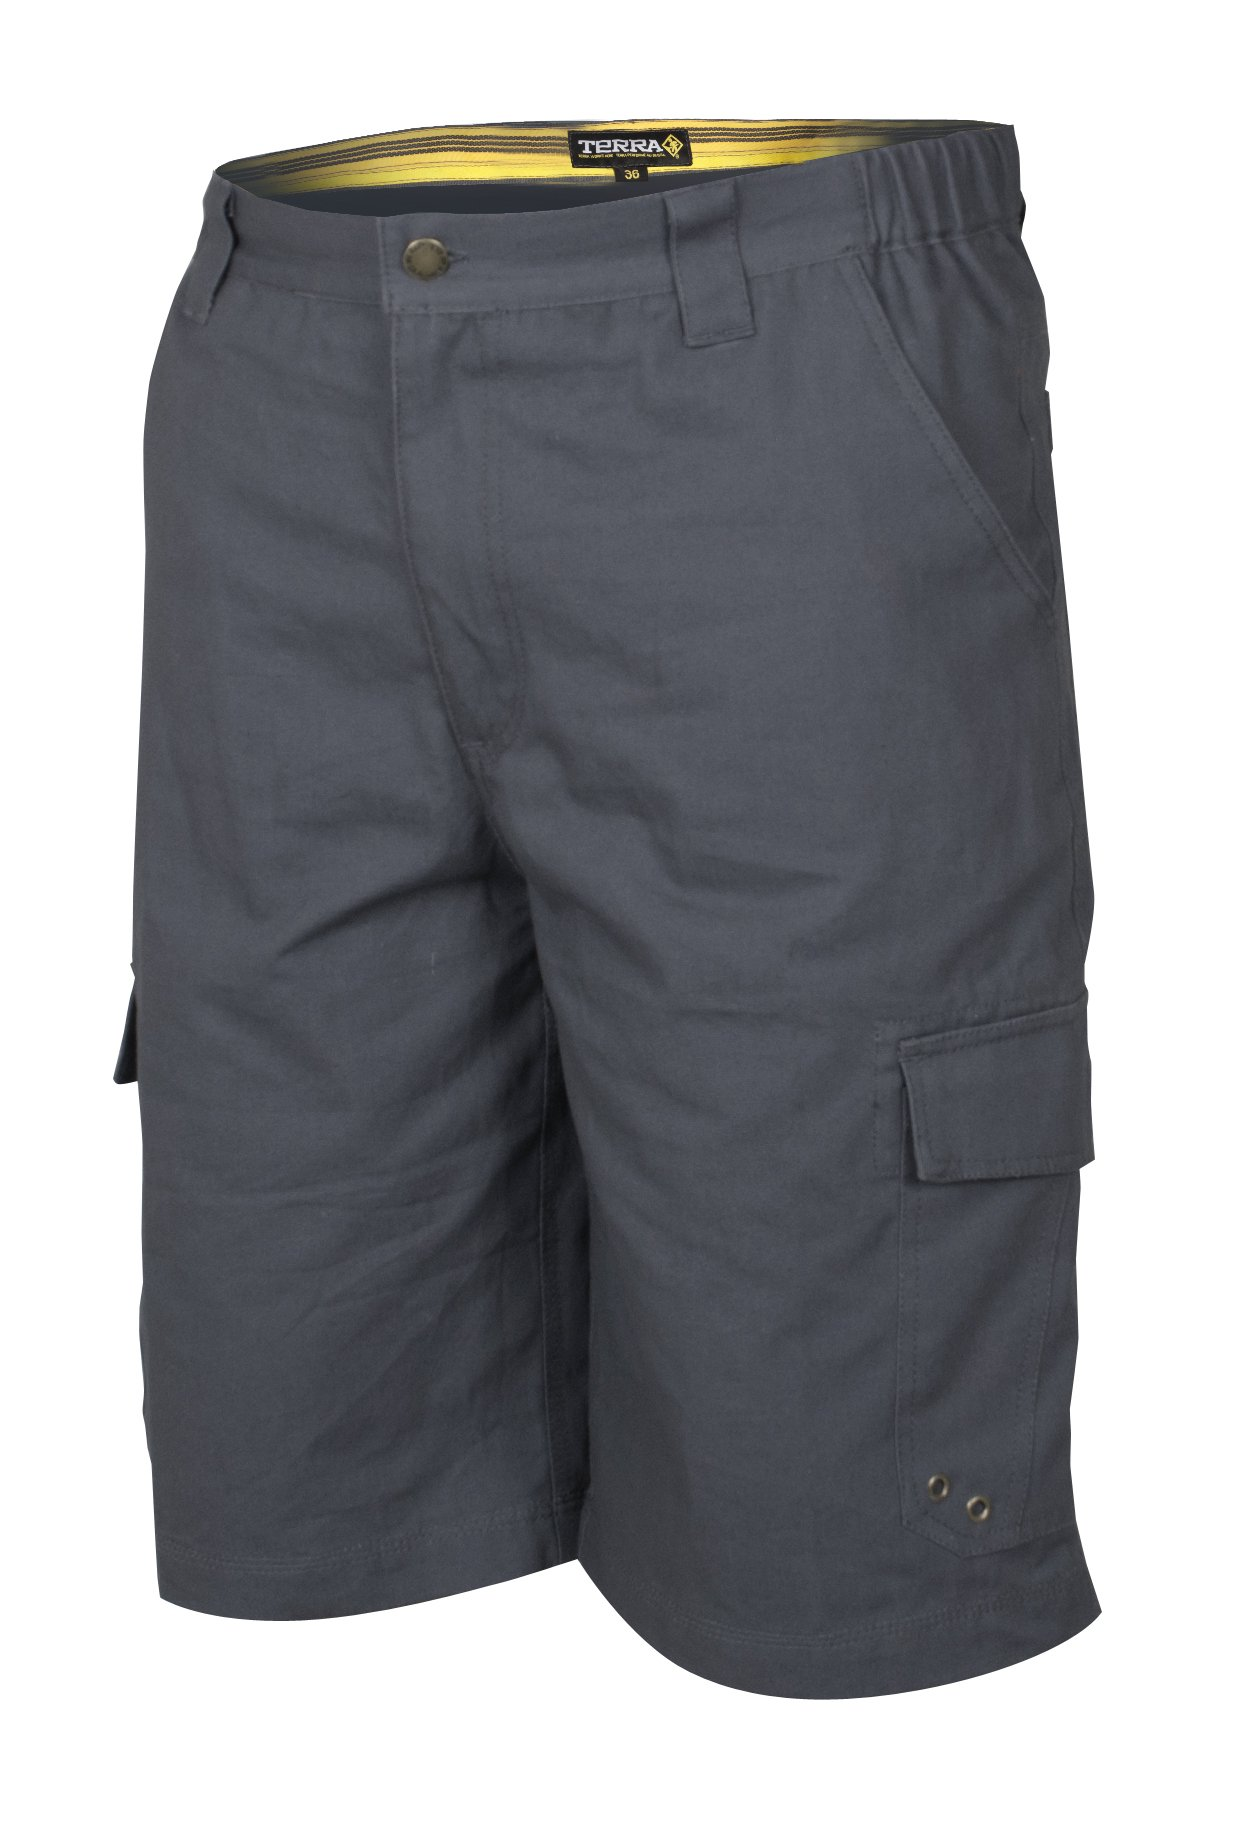 Terra 10-0113-CH34 Vice 100% Cotton Heavy Duty Multi-Pocket Cargo Style Work Short Safety Pants with 34'' Waist by Terra (Image #1)